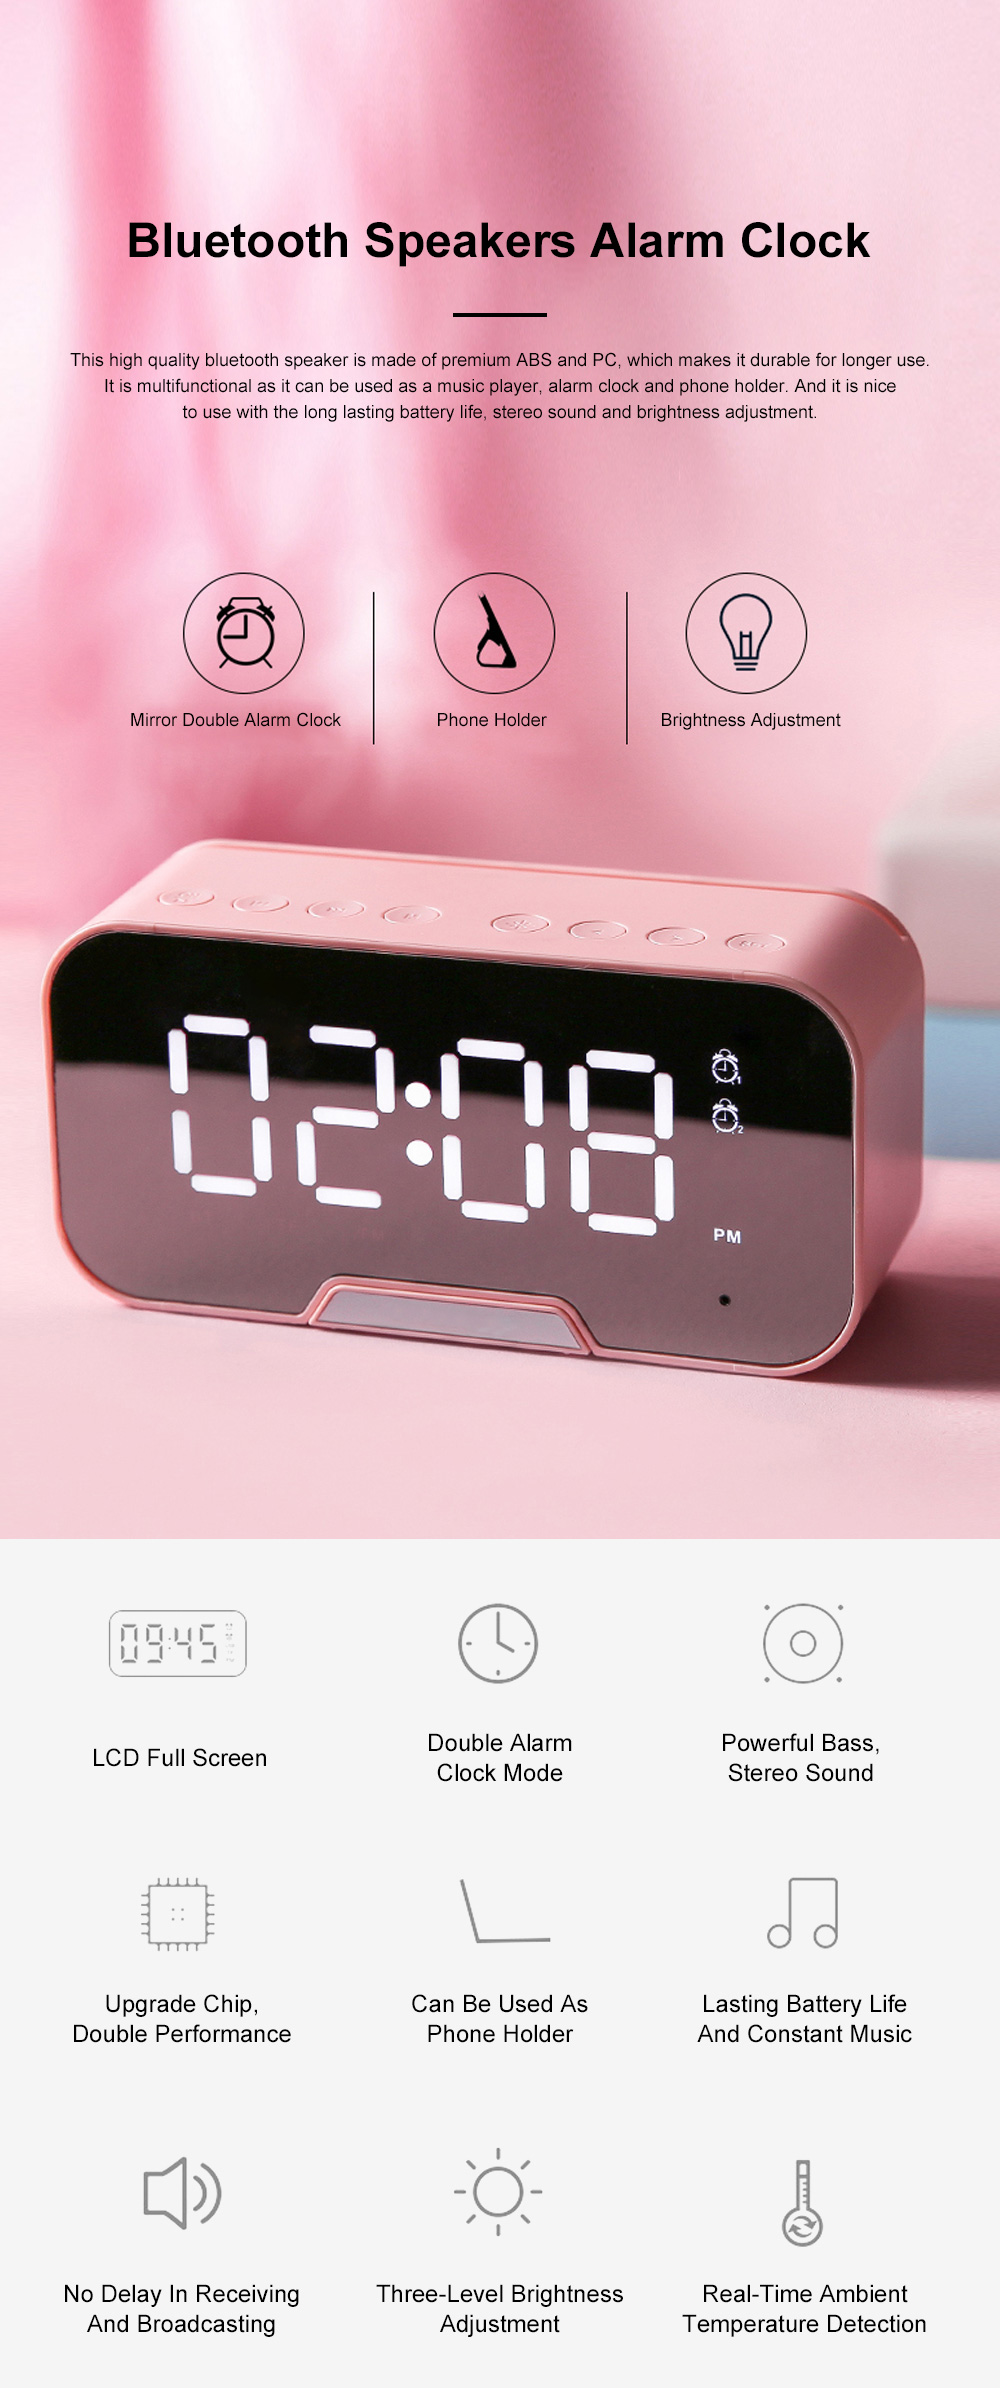 Bluetooth Speakers Alarm Clock Radio with Dual Alarms and 3 Level Brightness Adjustment and Stereo Sound 0